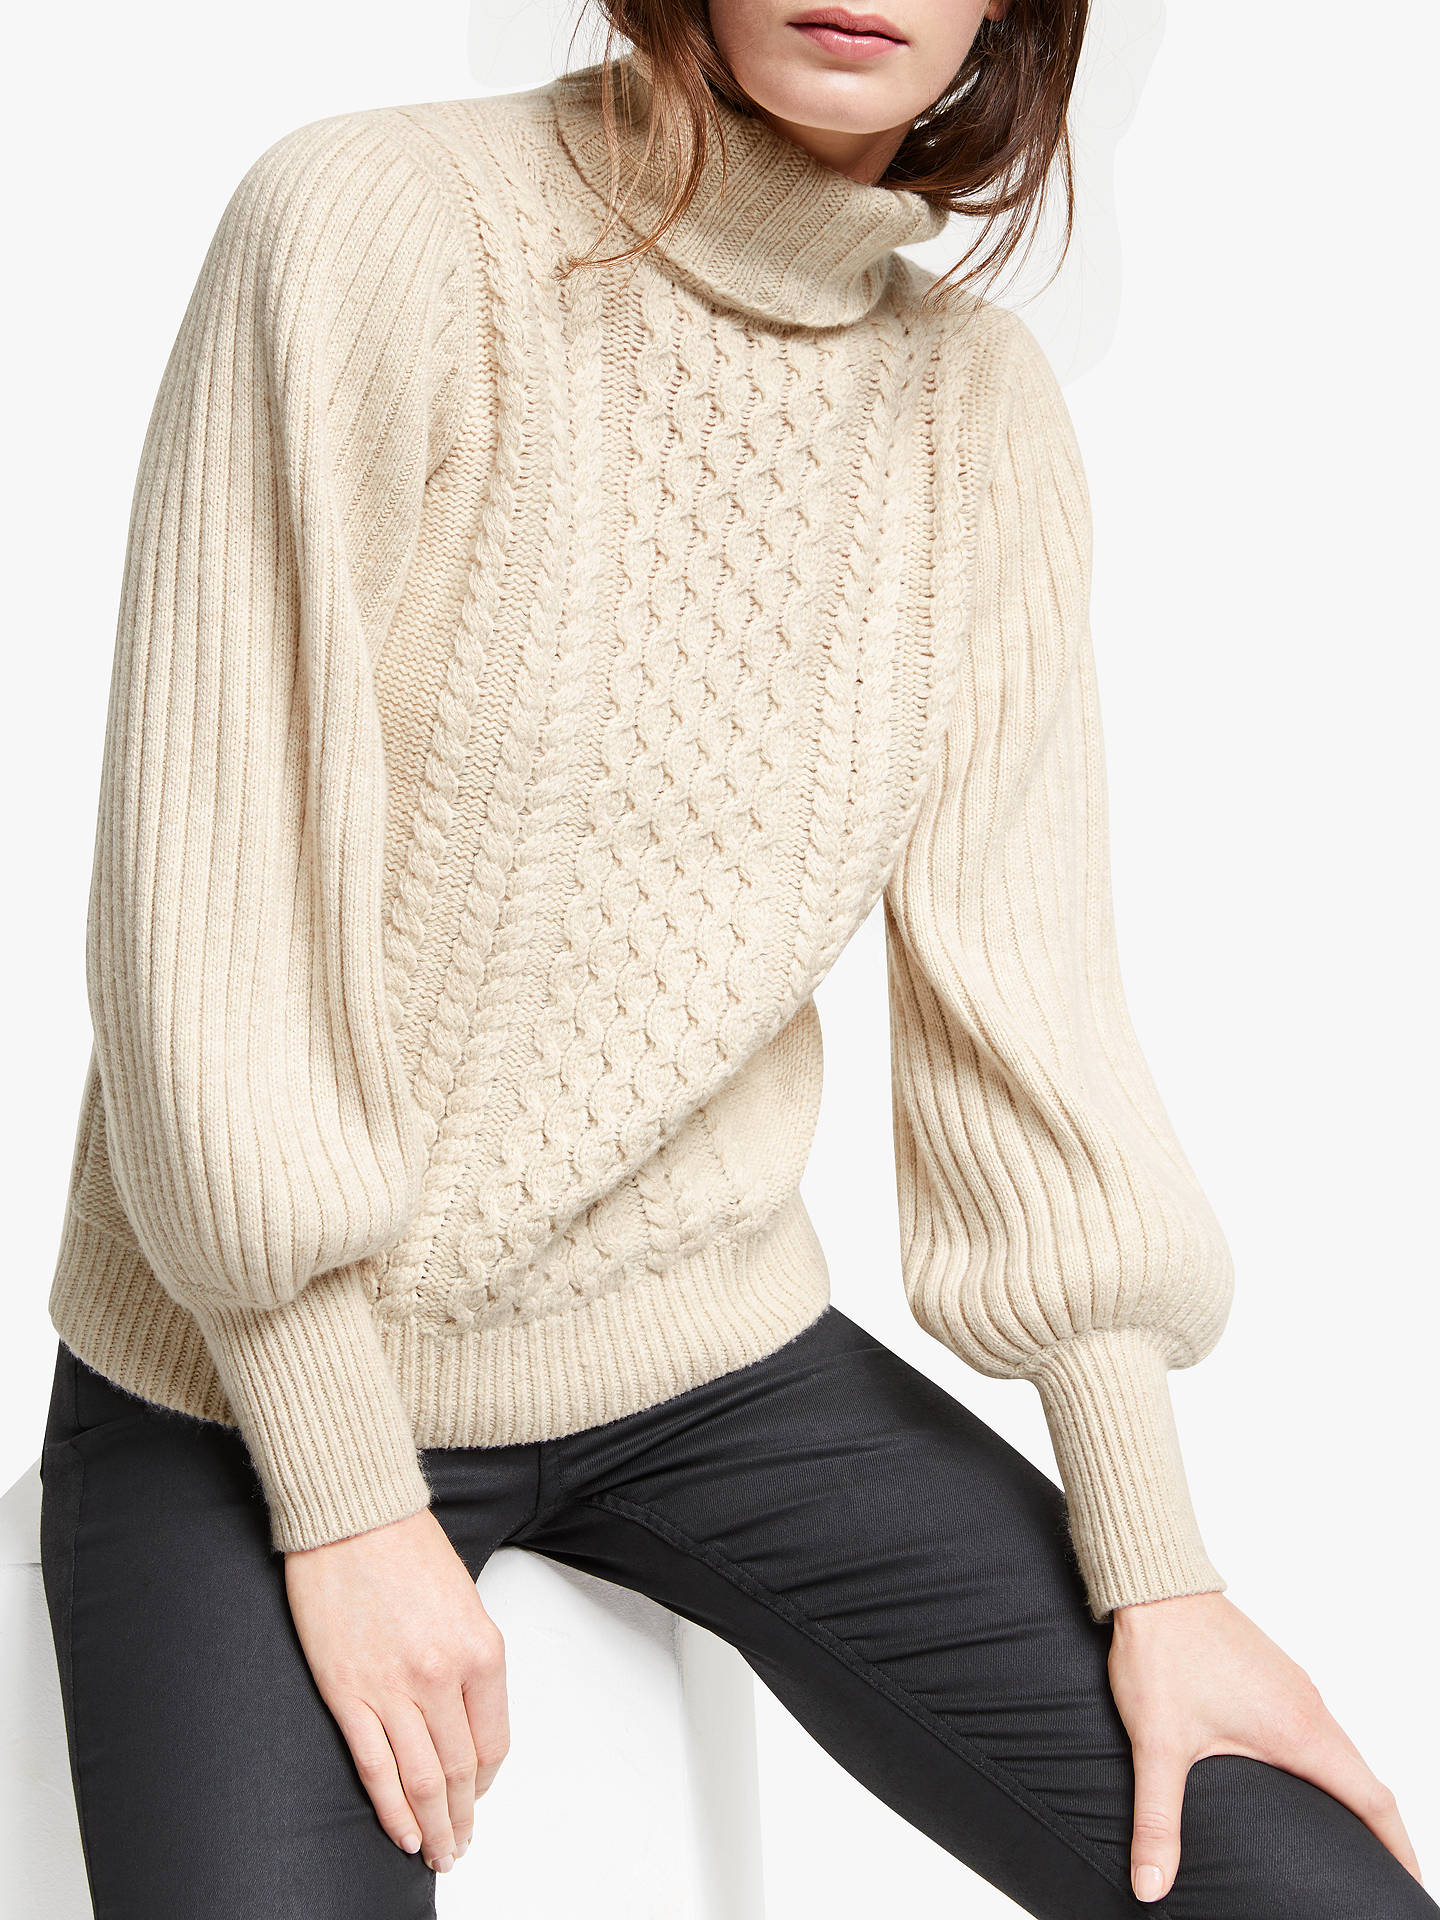 Somerset By Alice Temperley Chunky Roll Neck Jumper, Neutral by Somerset By Alice Temperley